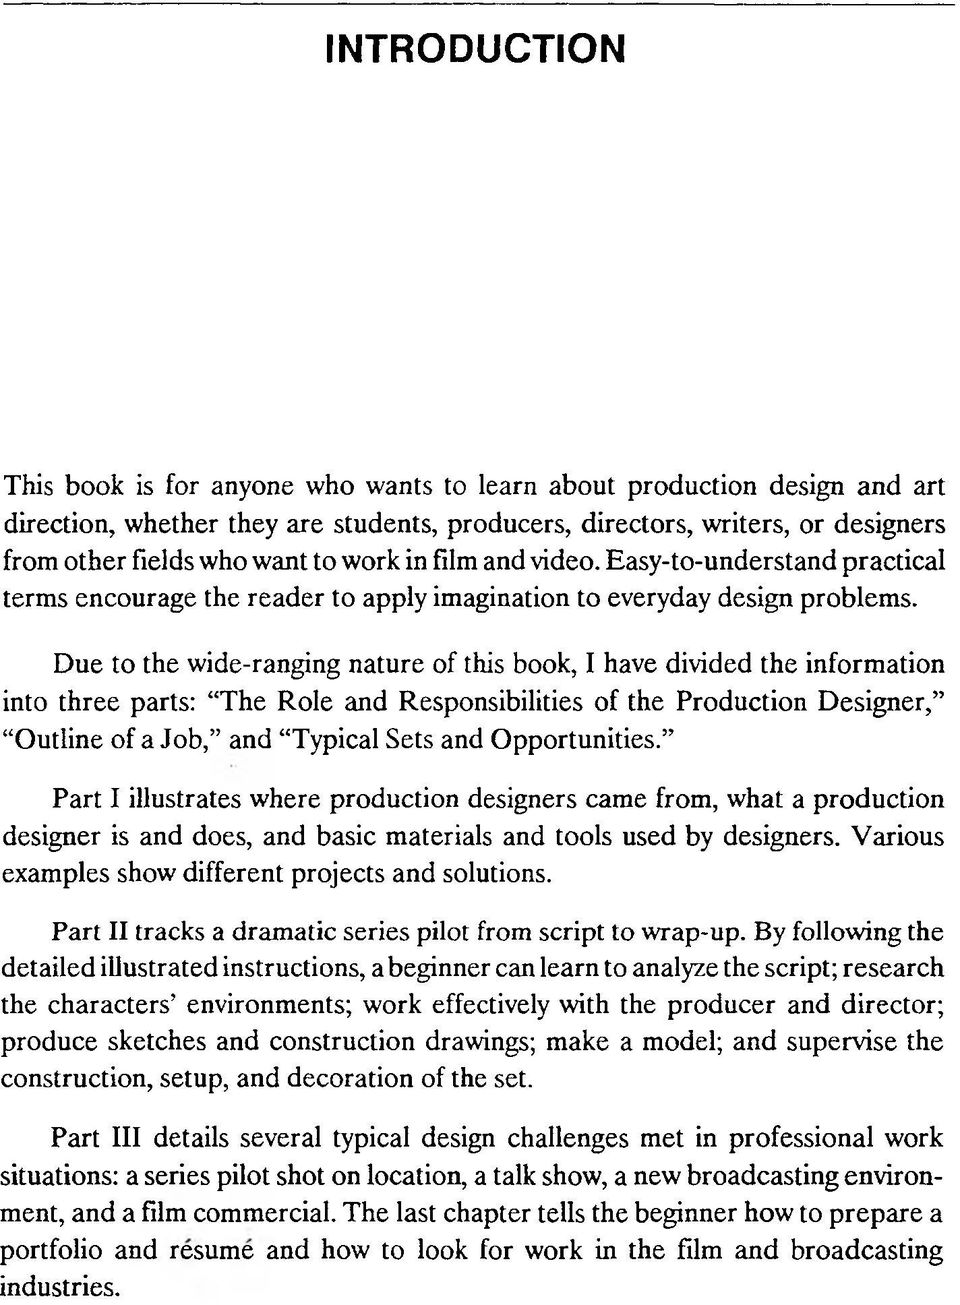 Due to the wide-ranging nature of this book, I have divided the information into three parts: The Role and Responsibilities of the Production Designer/ Outline of a Job, and Typical Sets and